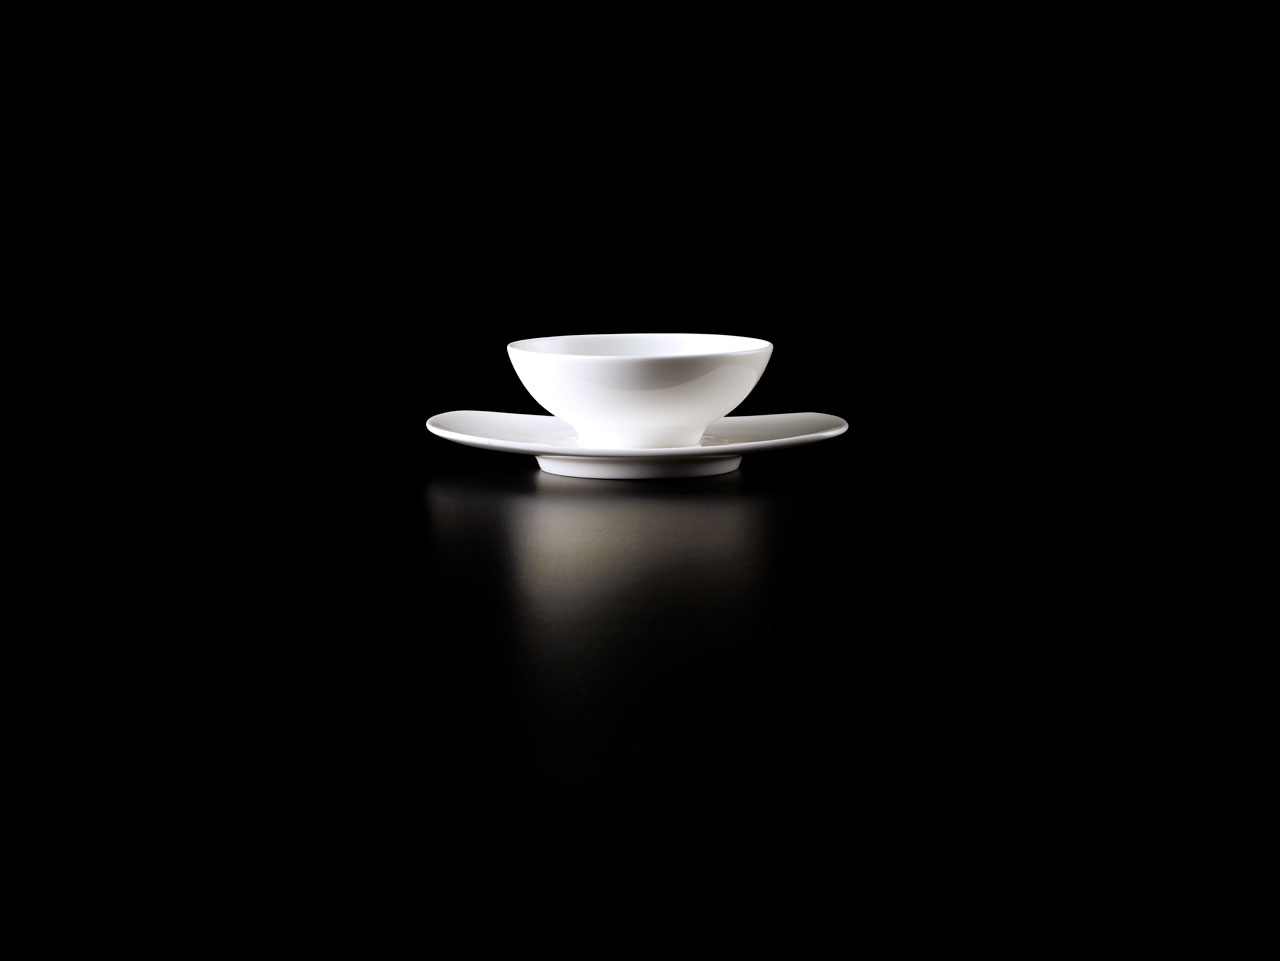 Bent Brandt - TABL white bone china S1 Bowl on S1 saucer